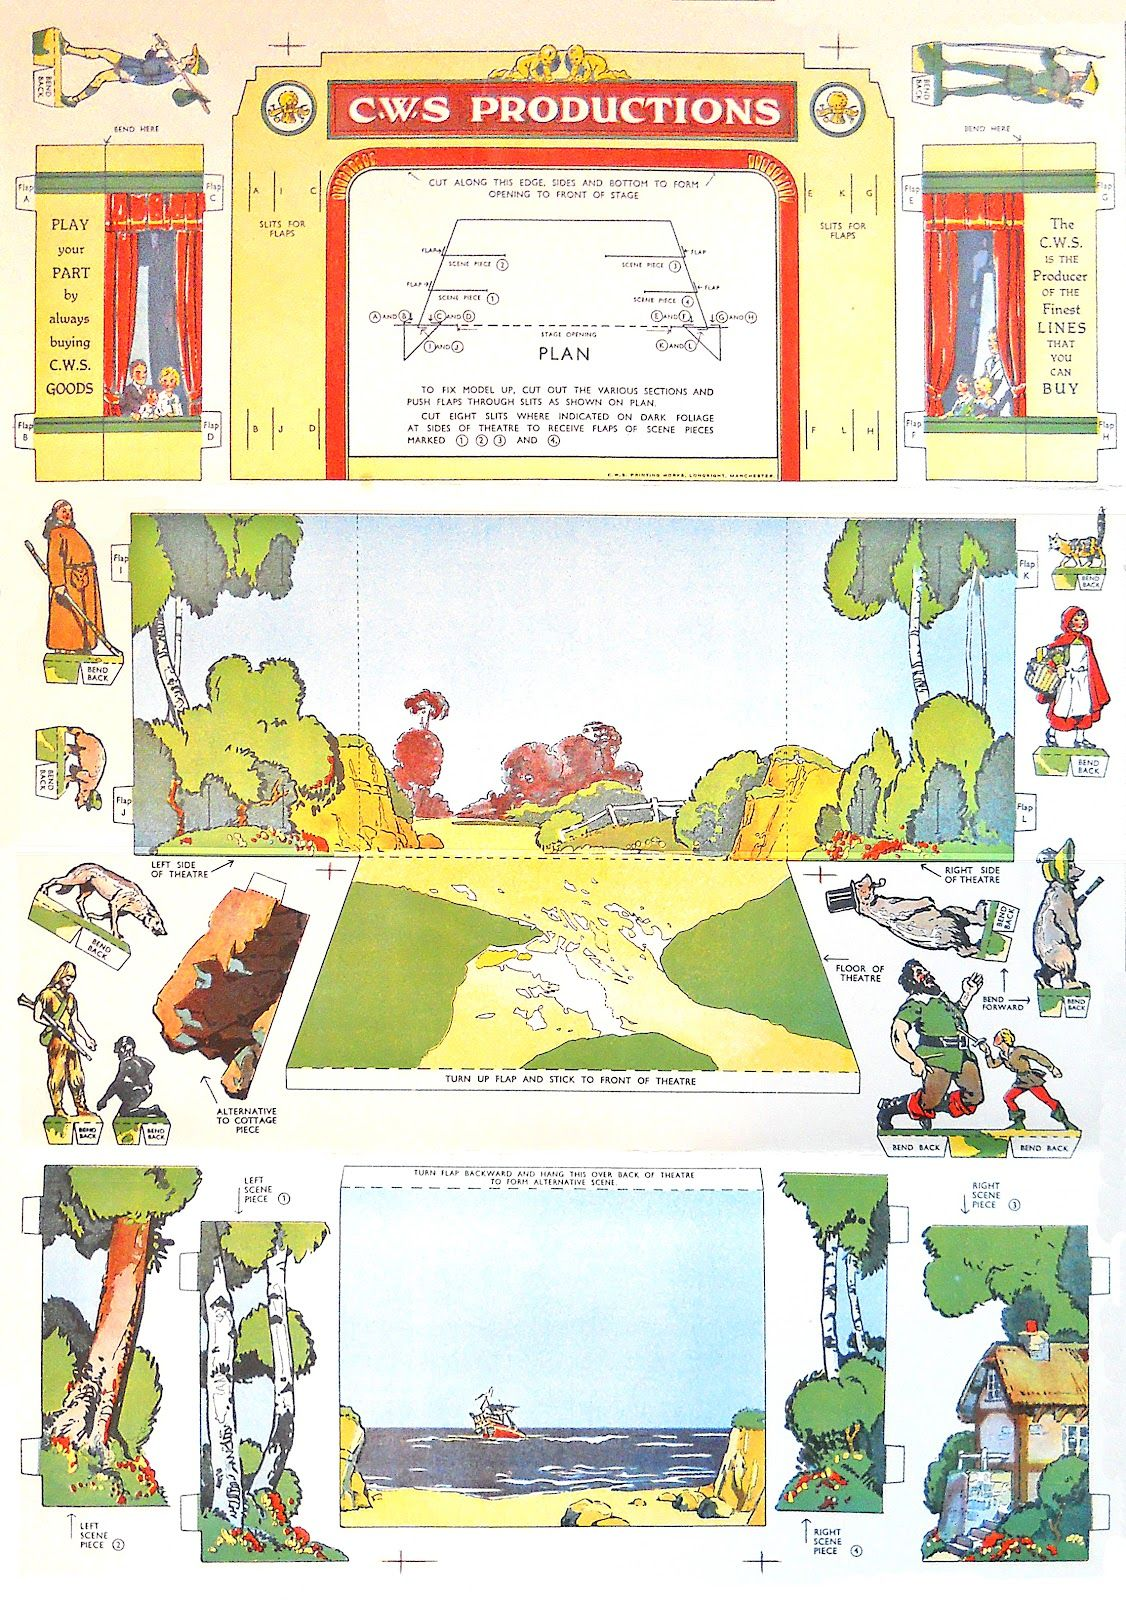 Co Op Theatre Fun Free Printable Theater Vintage Papercraft Include Jack And The Beanstalk